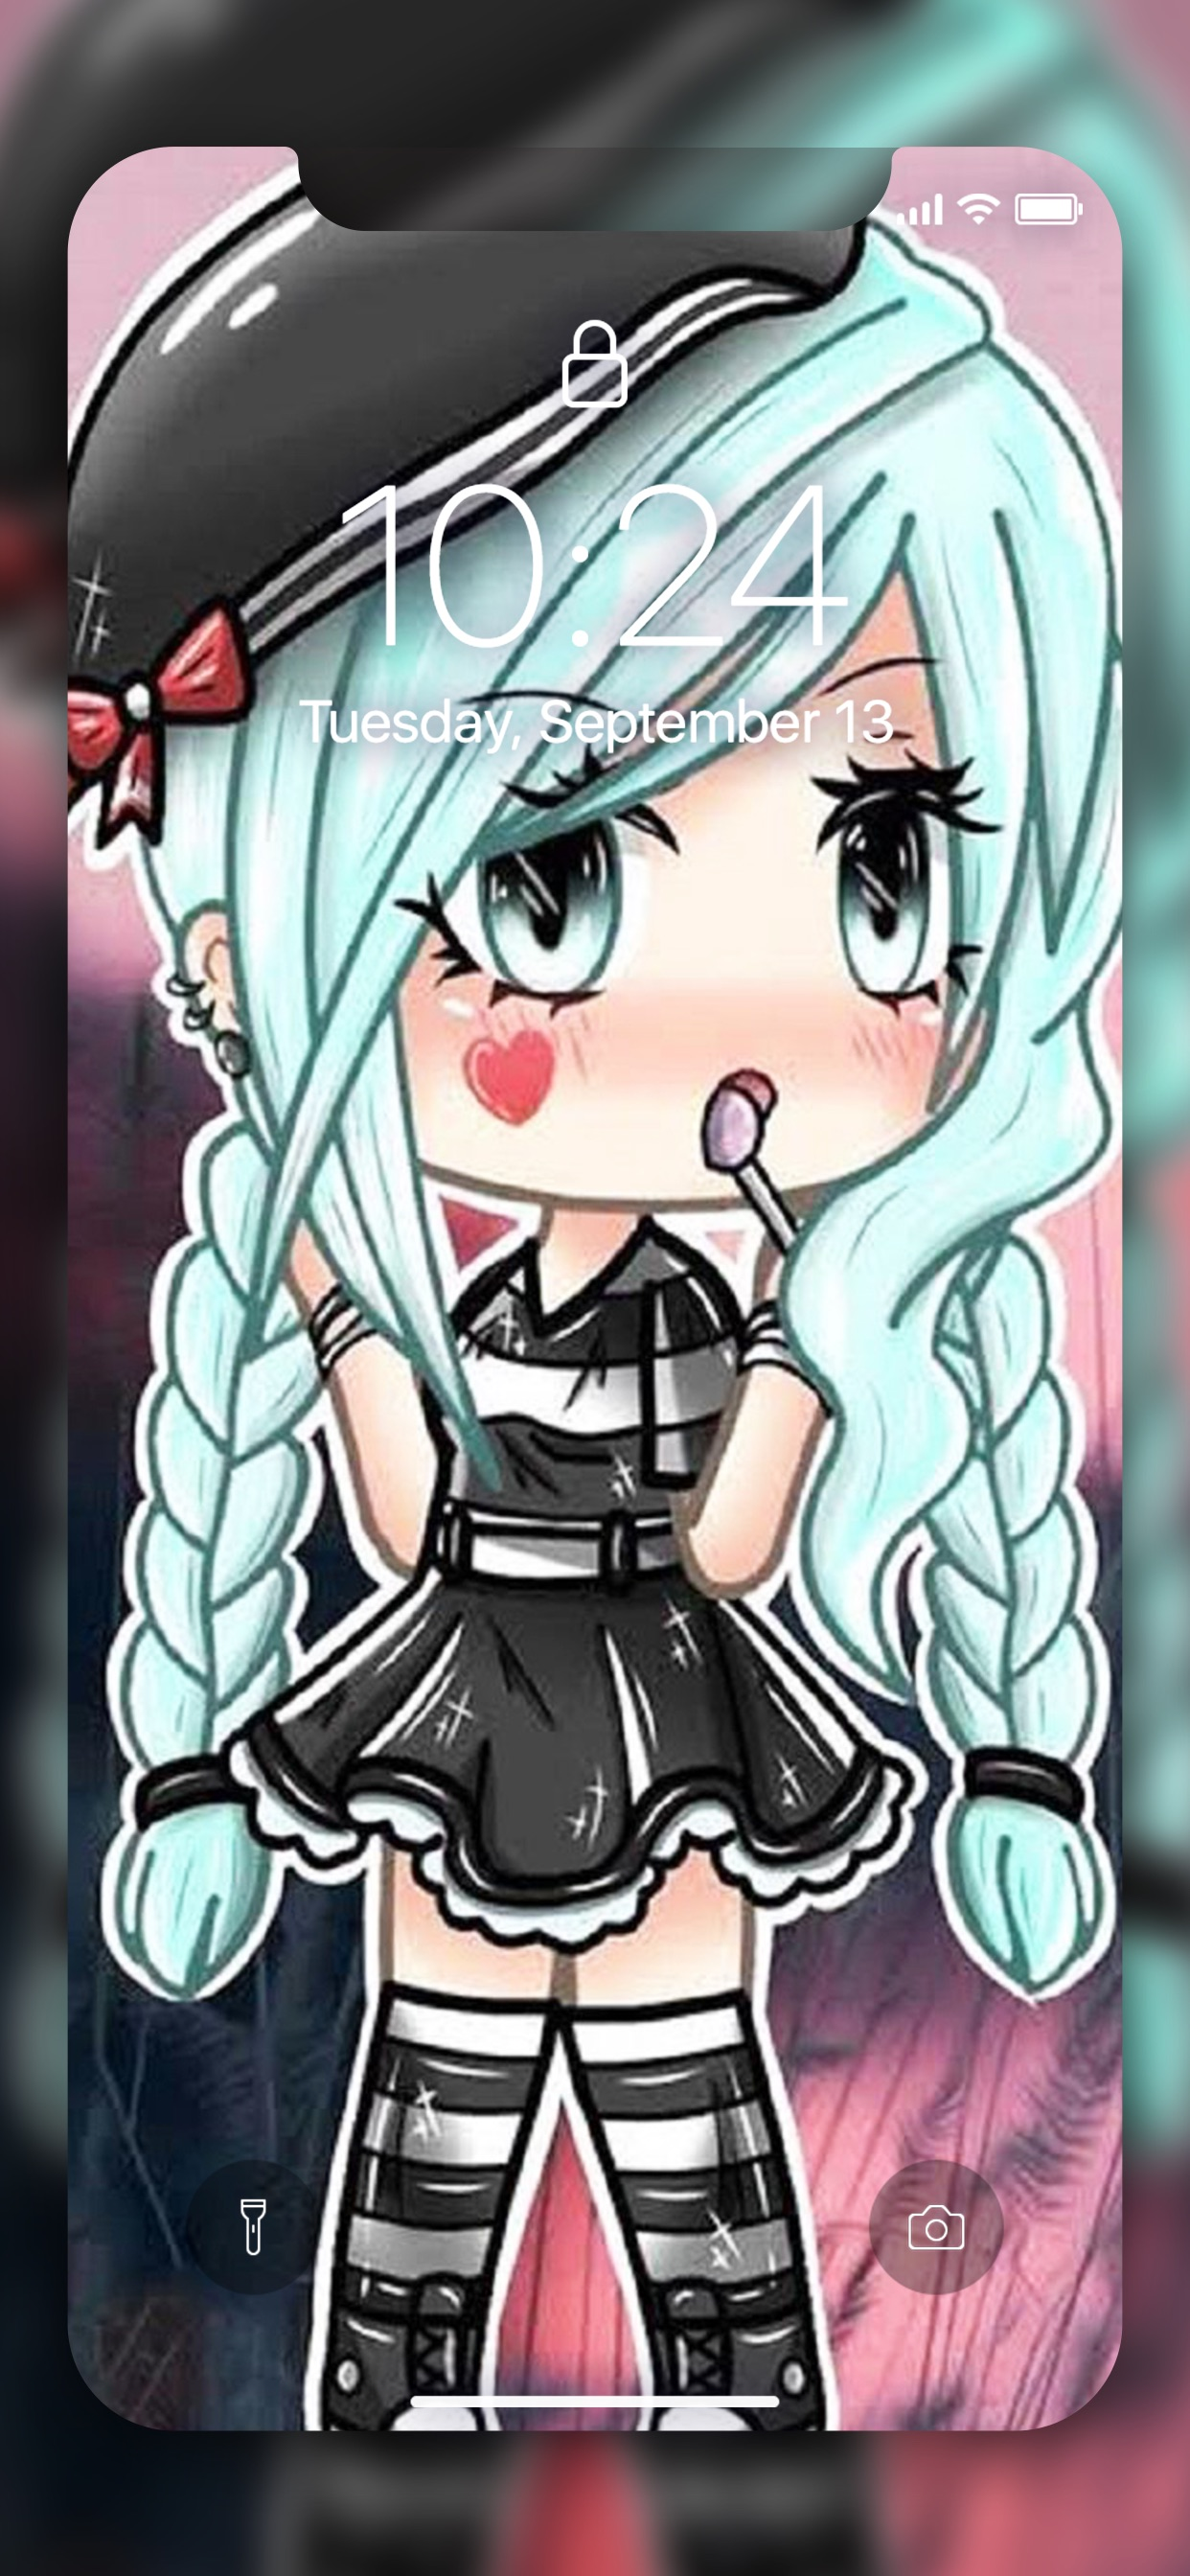 Empty Gacha Life Oc Card Wallpapers Hd For Gacha Life App Store Review Aso Revenue Downloads Appfollow